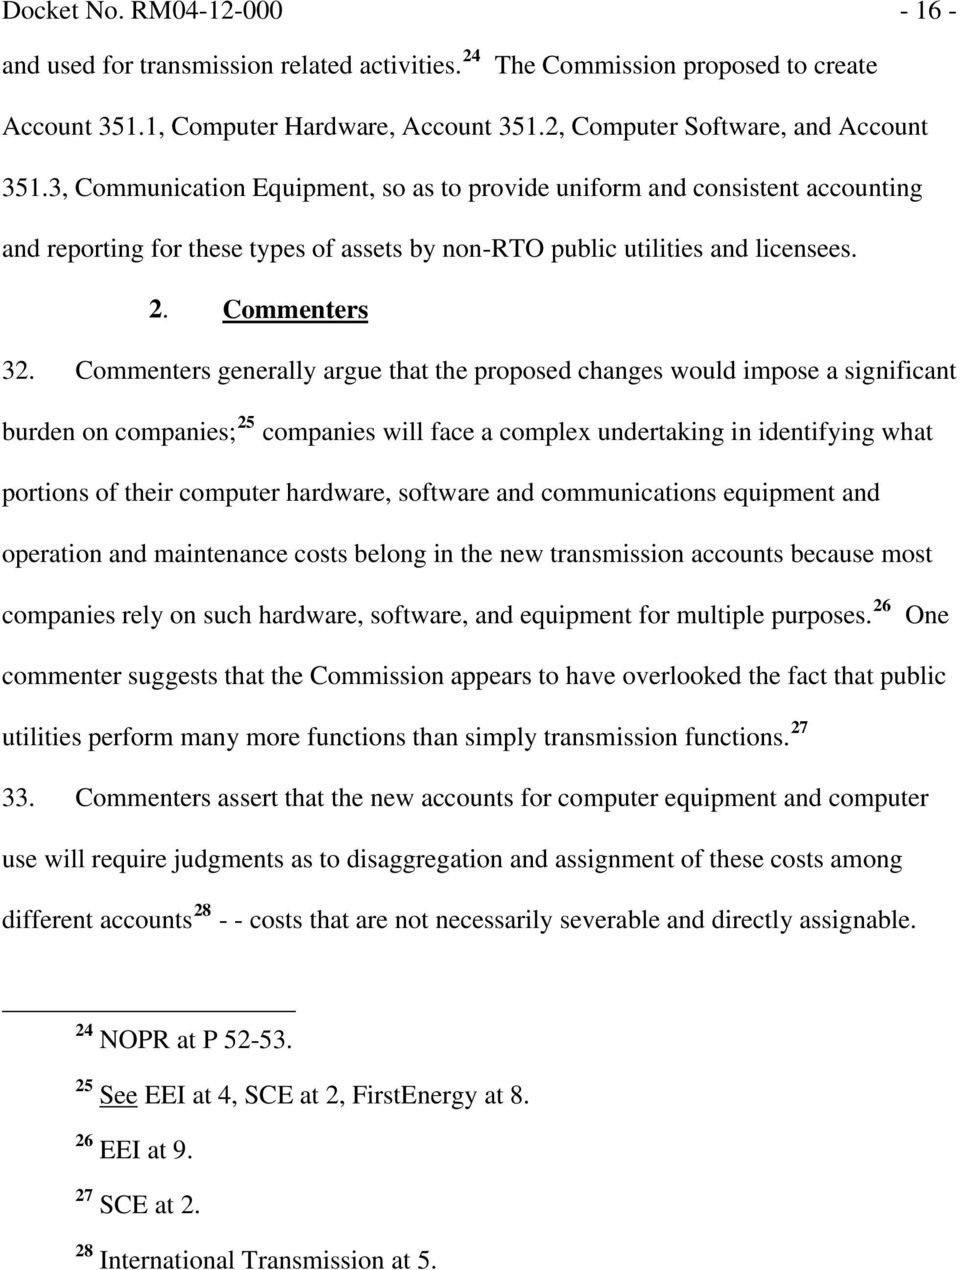 Commenters generally argue that the proposed changes would impose a significant burden on companies; 25 companies will face a complex undertaking in identifying what portions of their computer